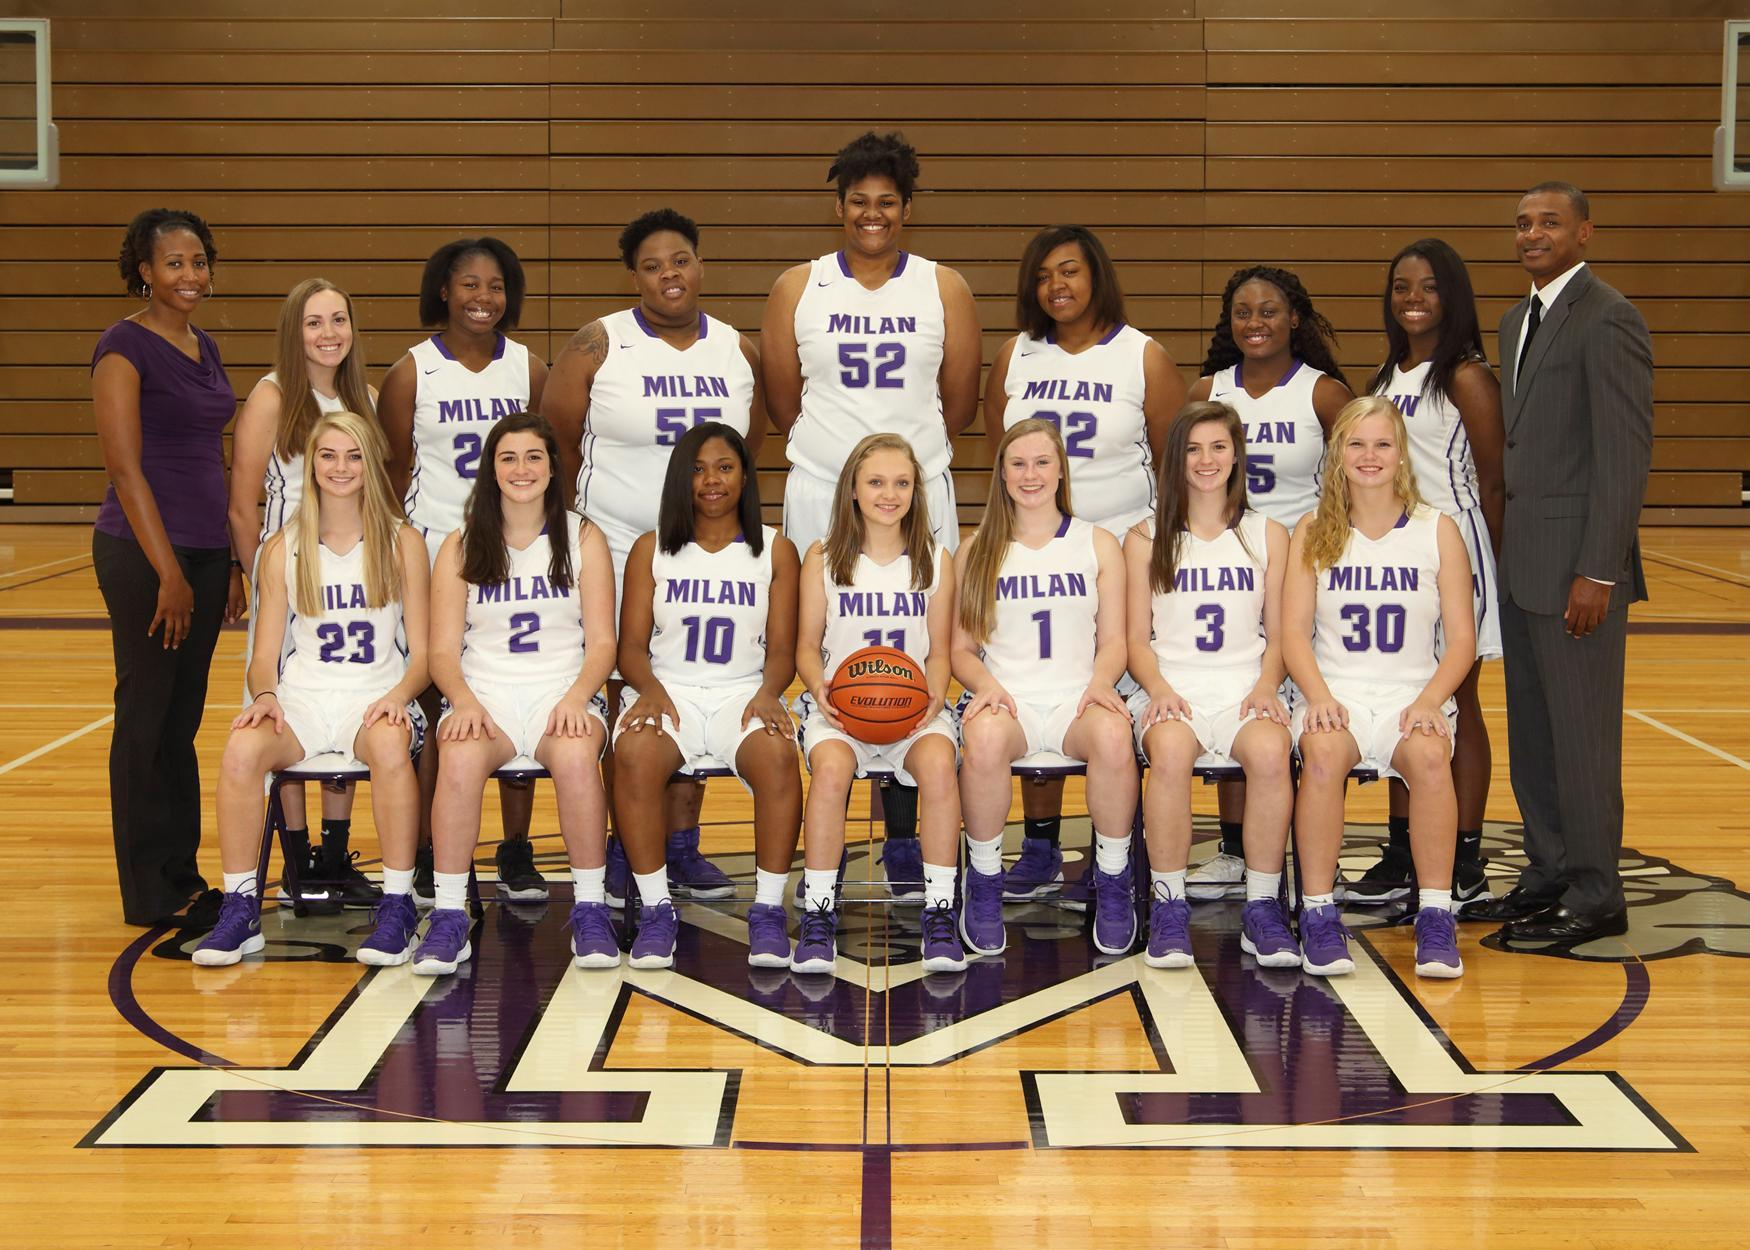 Group Photo of the Girl's Basketball Team